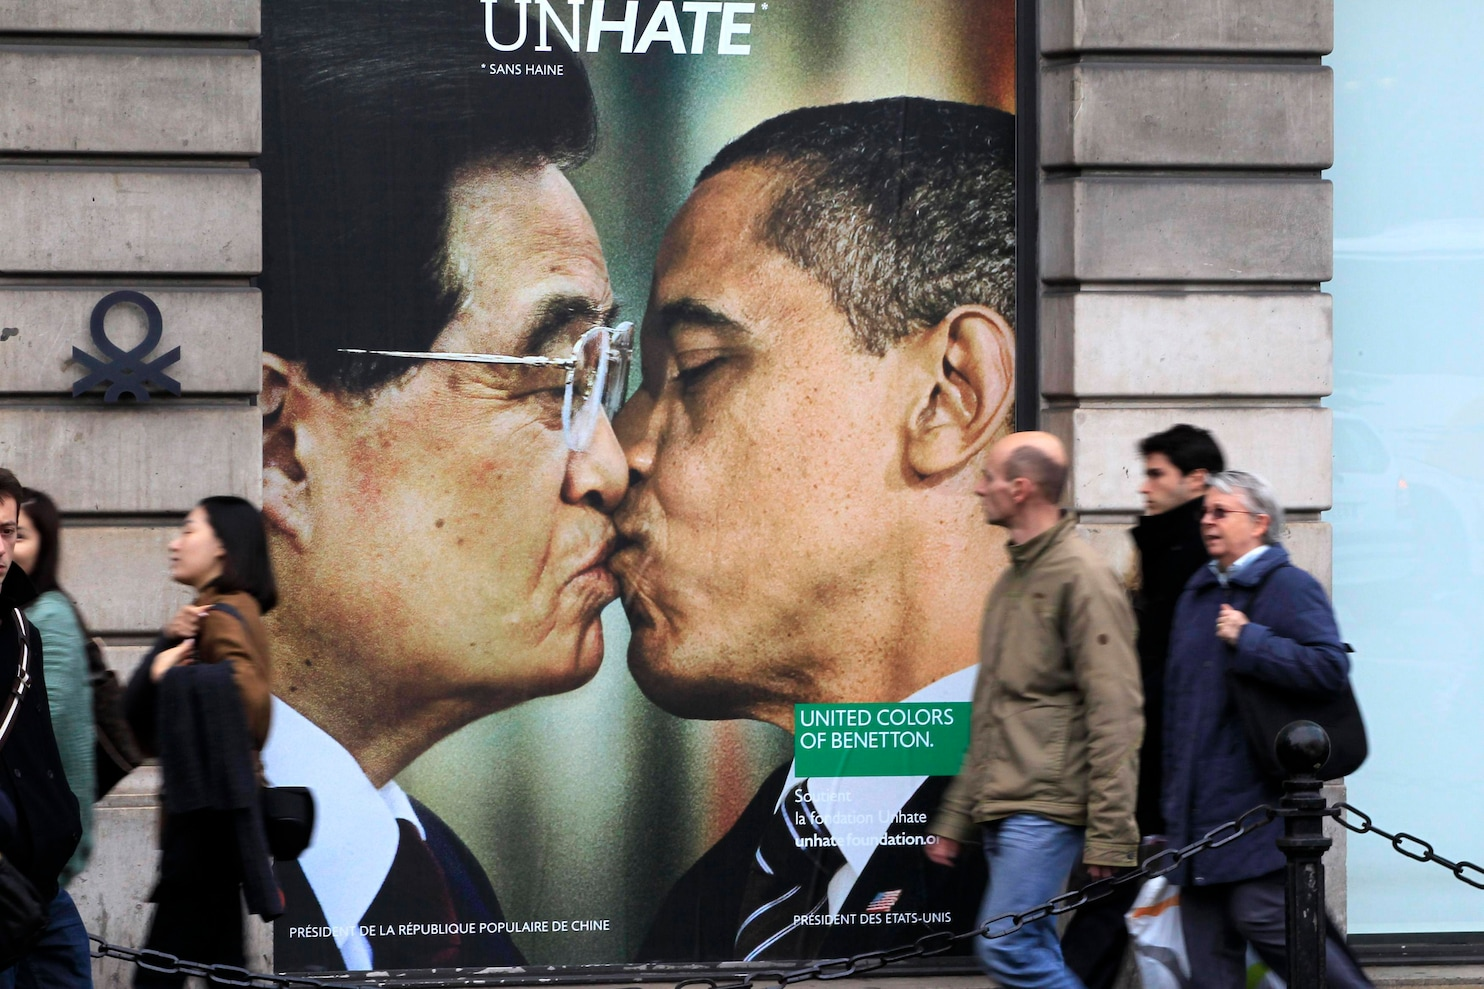 Benettons controversial kissing ads  The Washington Post